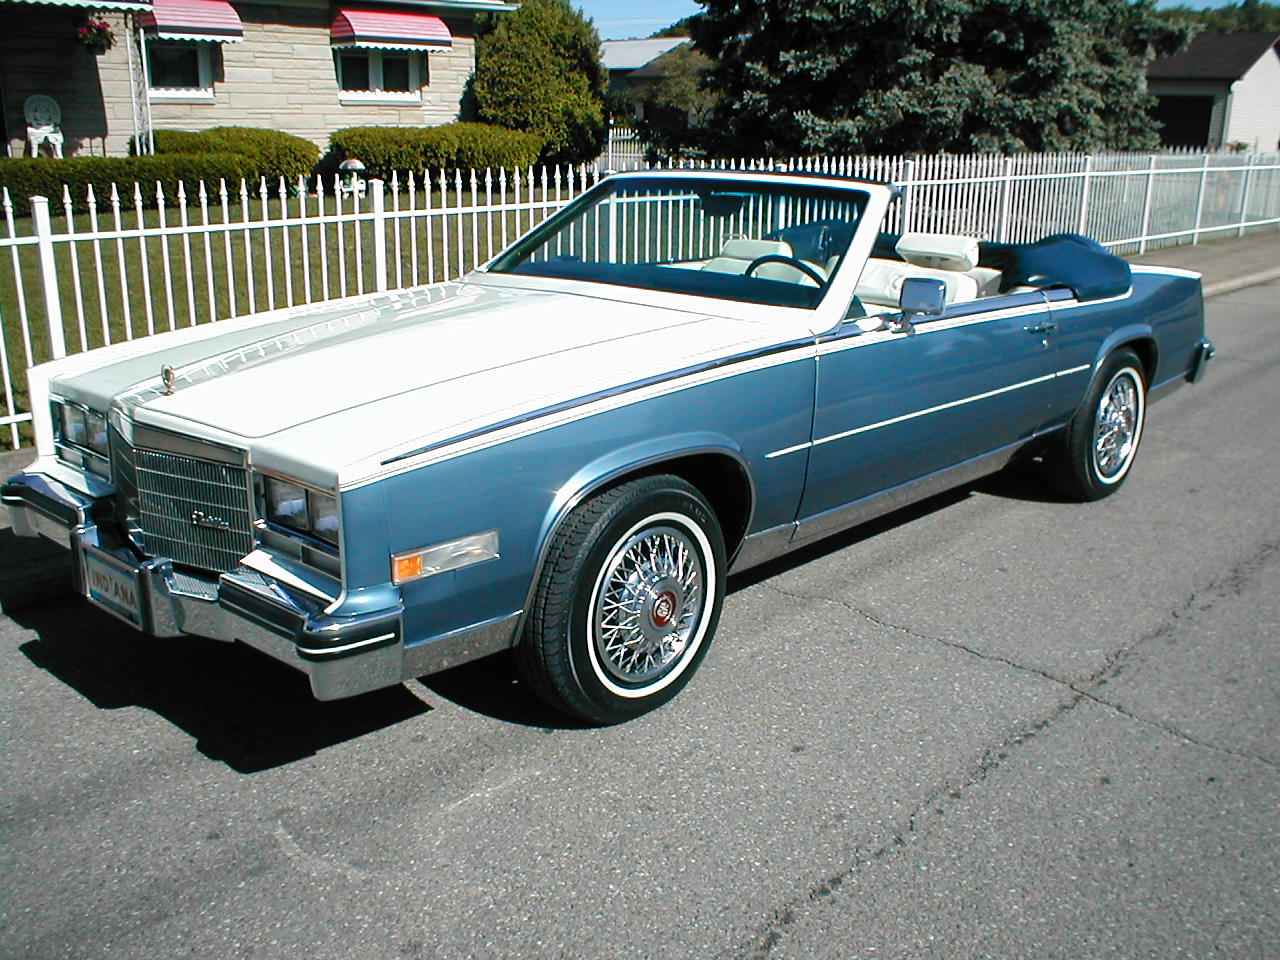 File:85 Cadillac Convertible.JPG - Wikimedia Commons